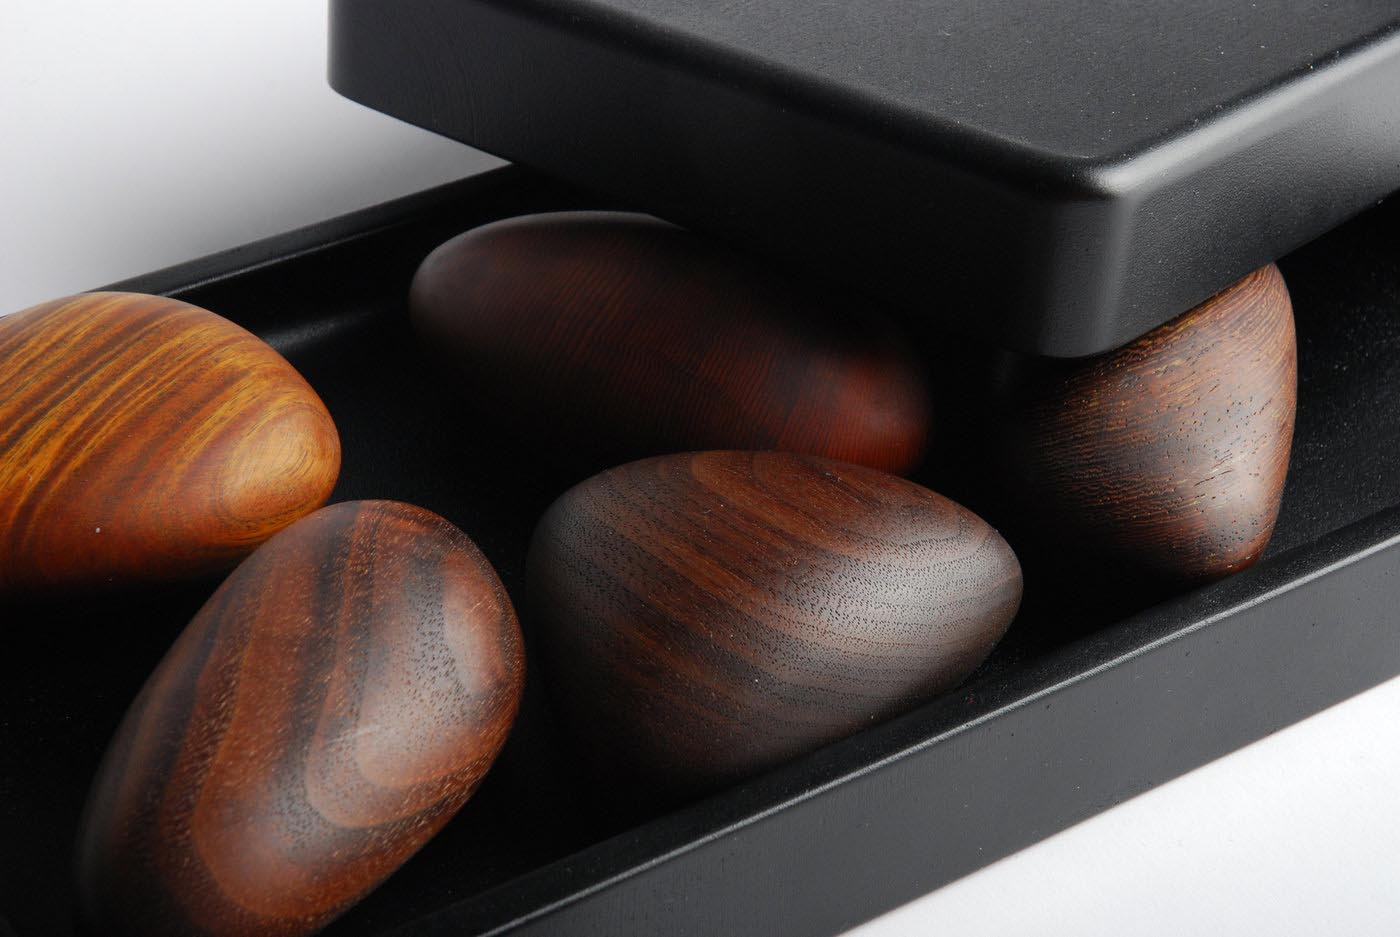 A box of pebble-shaped wooden objects.